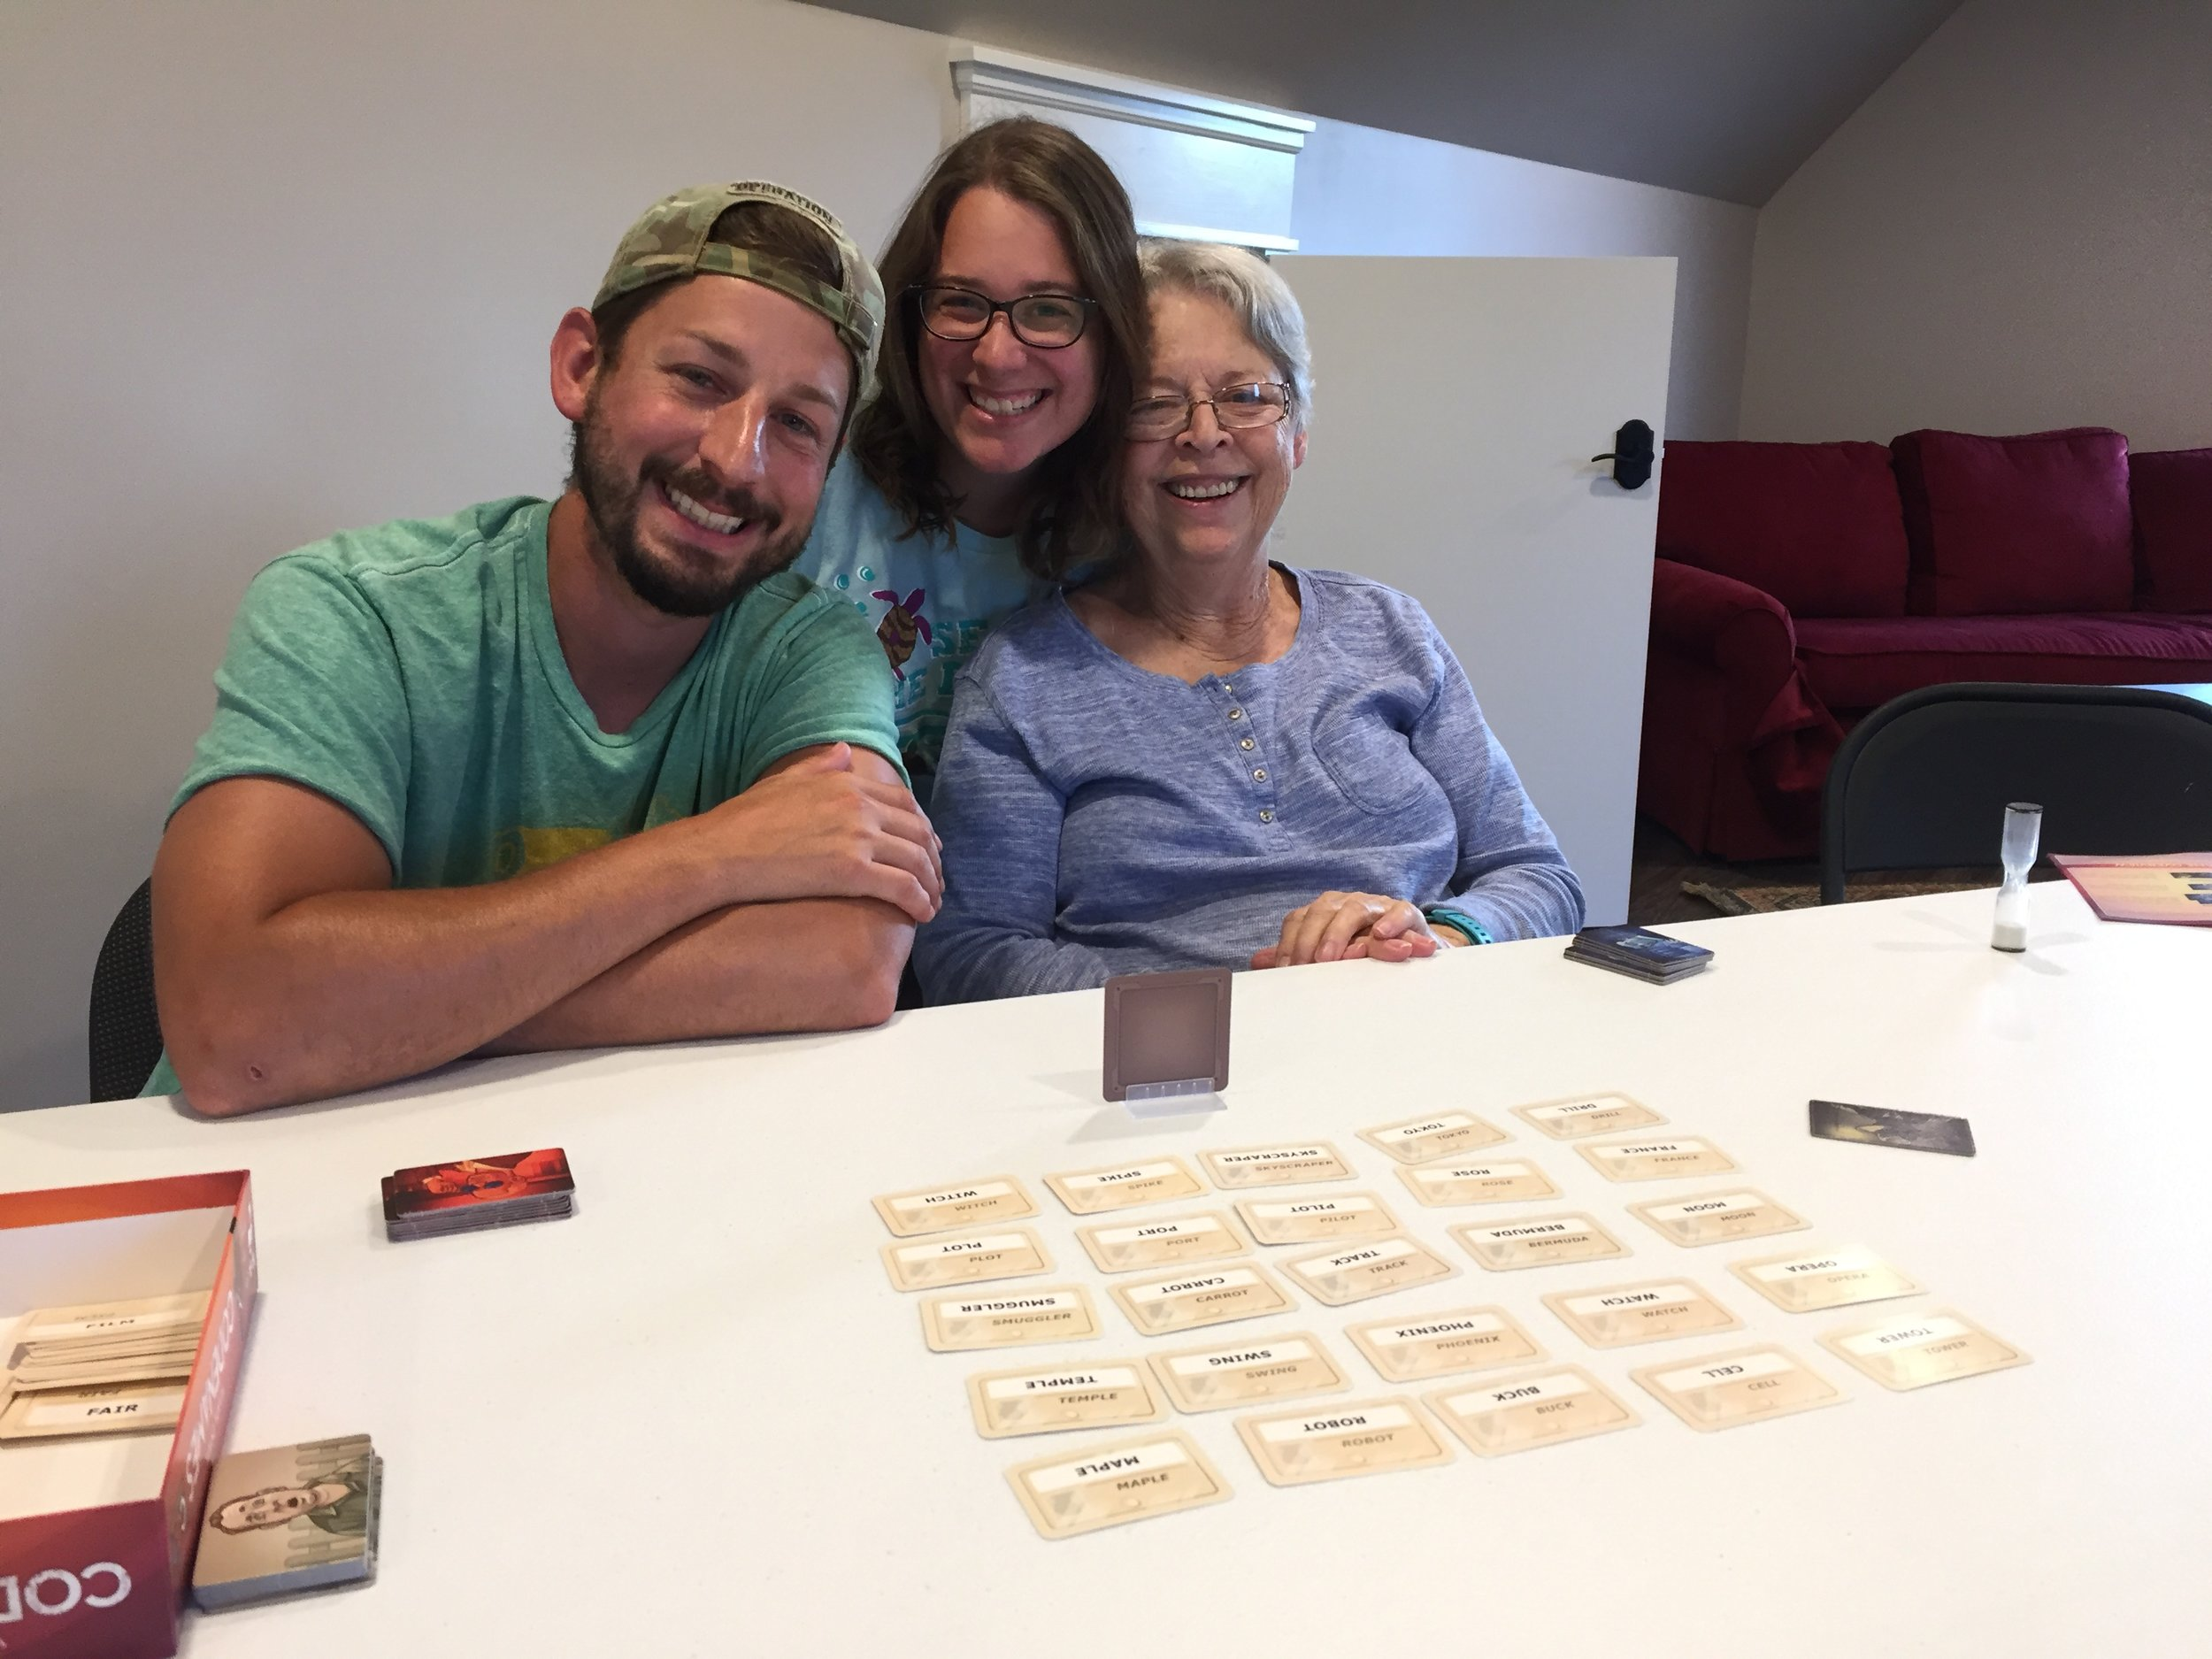 Ann and John got us addicted to codenames, so I had to get it and teach it to J and Mom =)